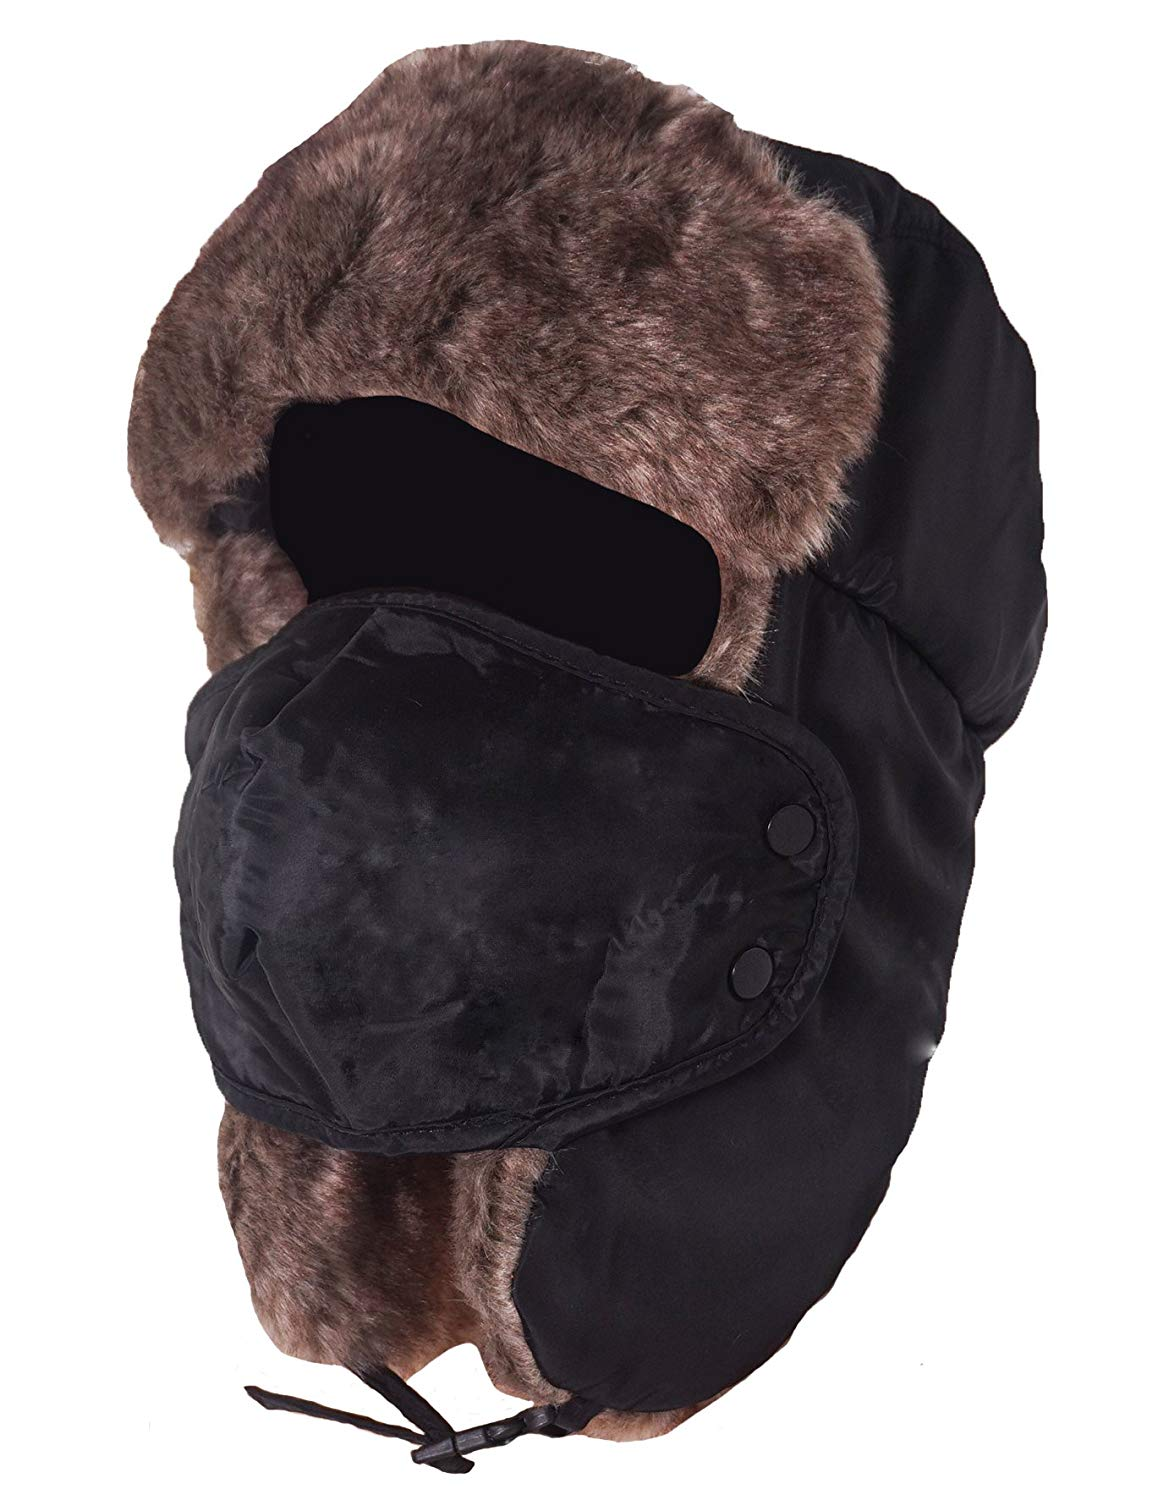 28d91e95b1957 Get Quotations · West s Unisex Winter Trooper Trapper Hat Hunting Hat  Ushanka Ear Flap Chin Strap with Windproof Mask